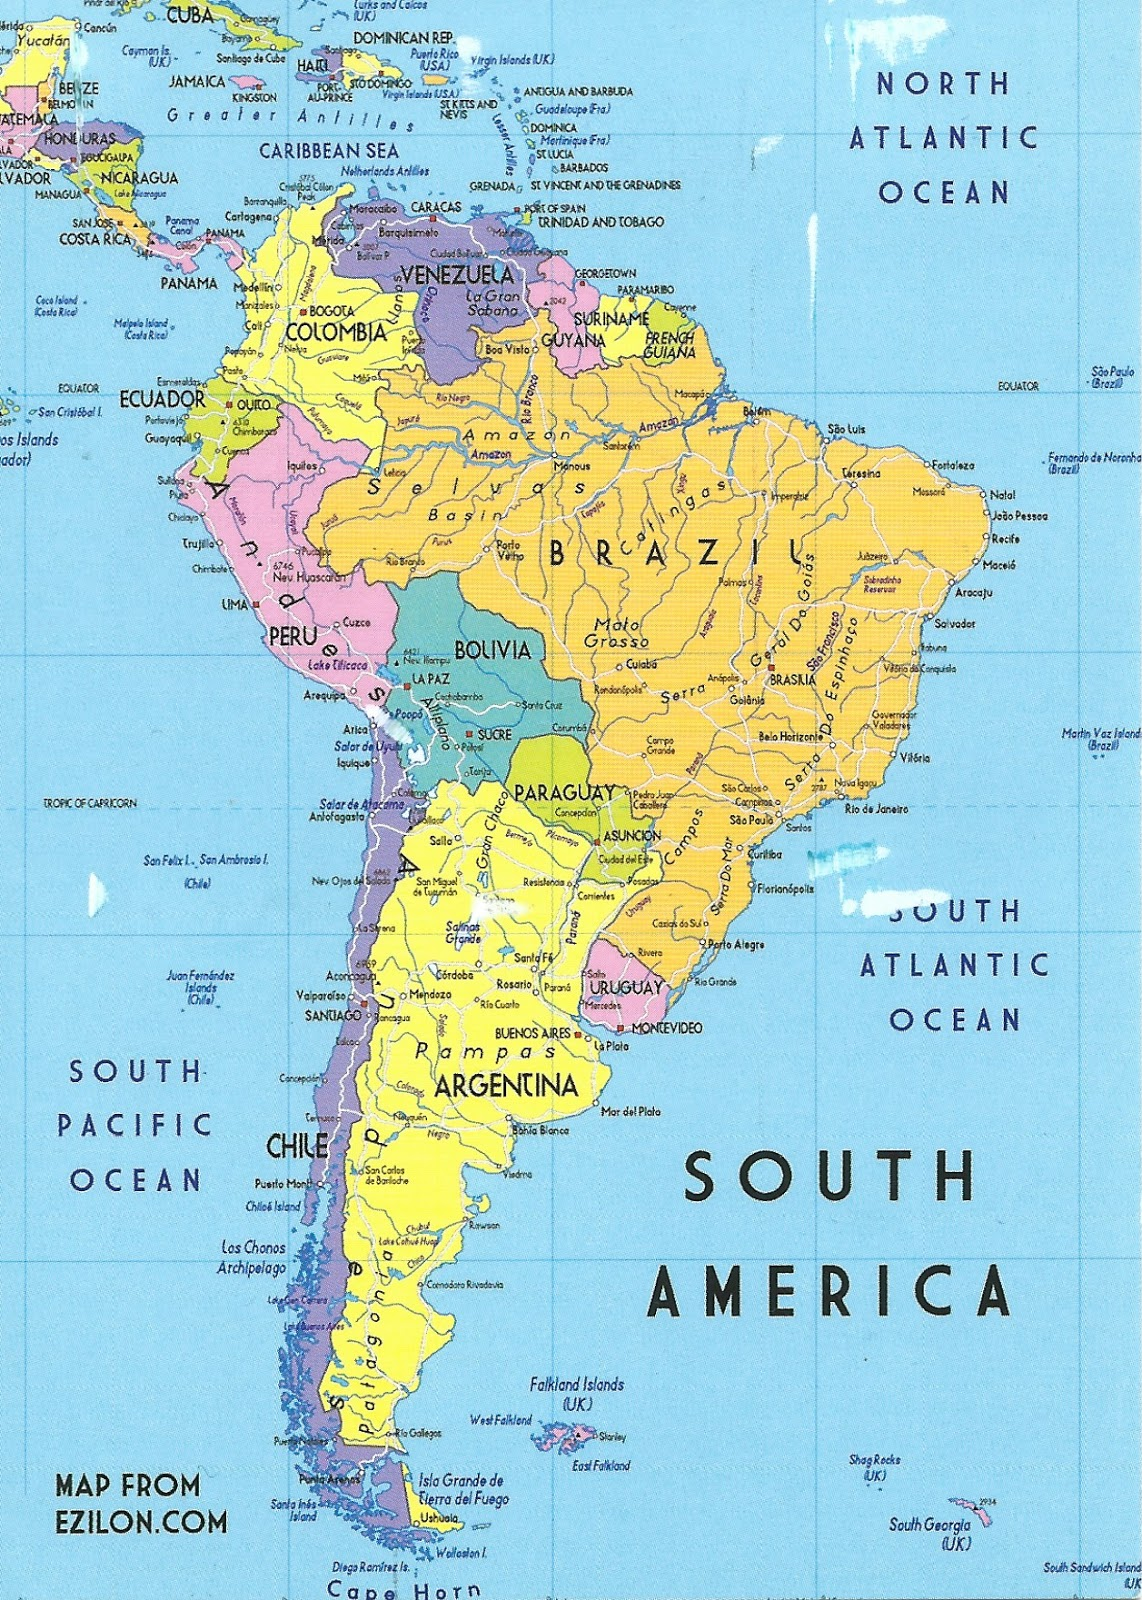 MY POSTCARDPAGE ARGENTINA South America Map - Georgia map islands